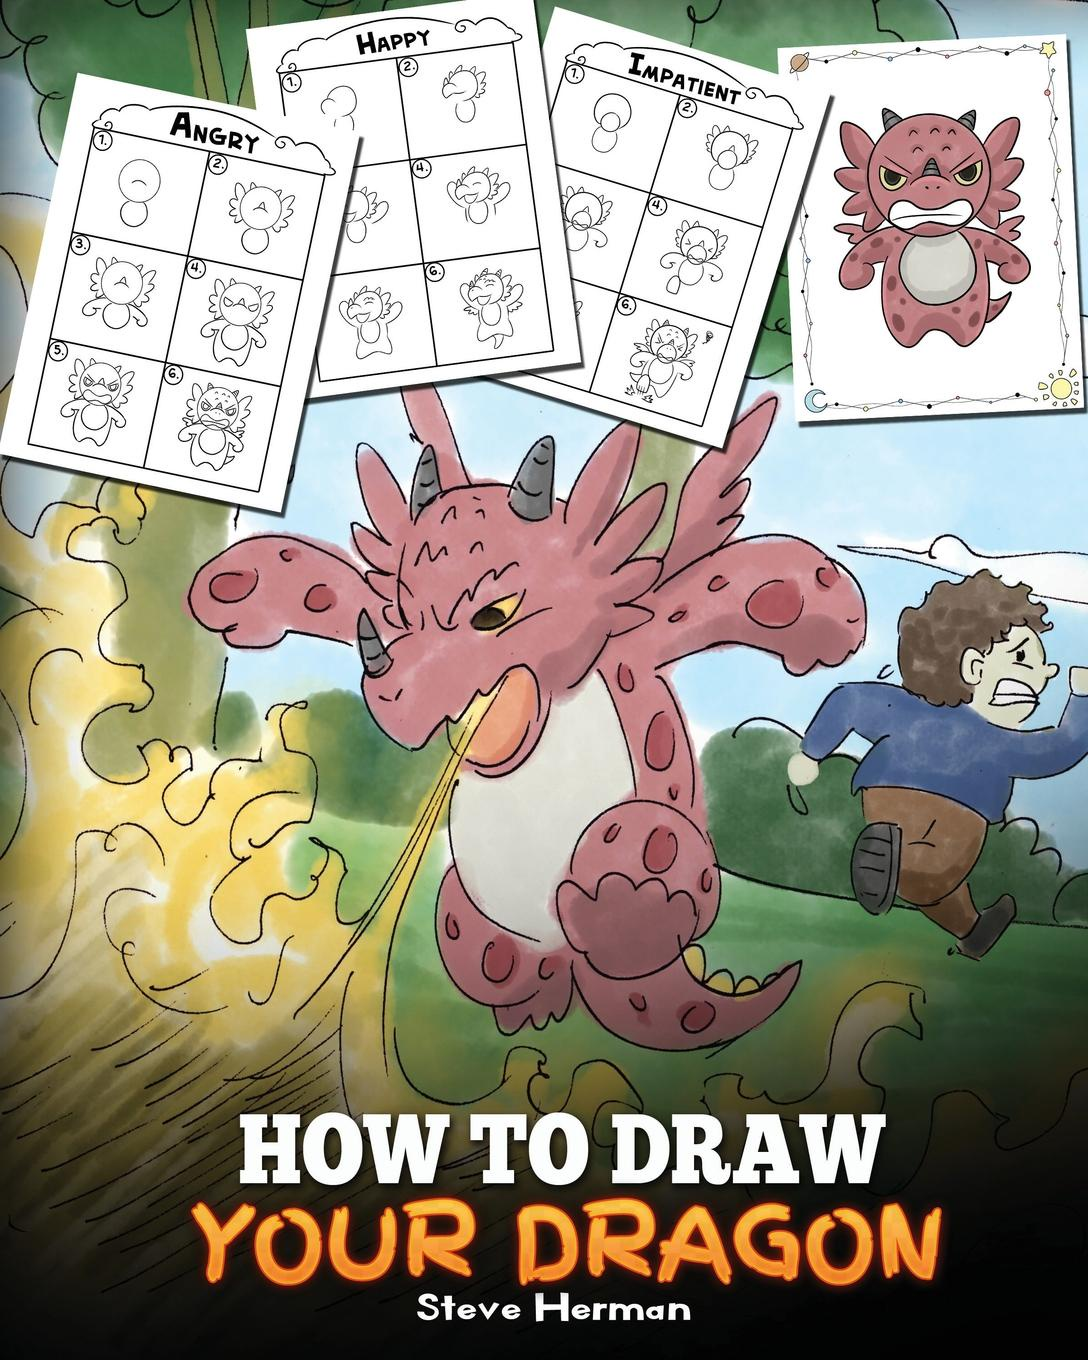 Steve Herman How to Draw Your Dragon. Learn How to Draw Cute Dragons with Different Emotions. A Fun and Easy Step by Step Guide To Draw Dragons for Kids. how to draw early learning fun